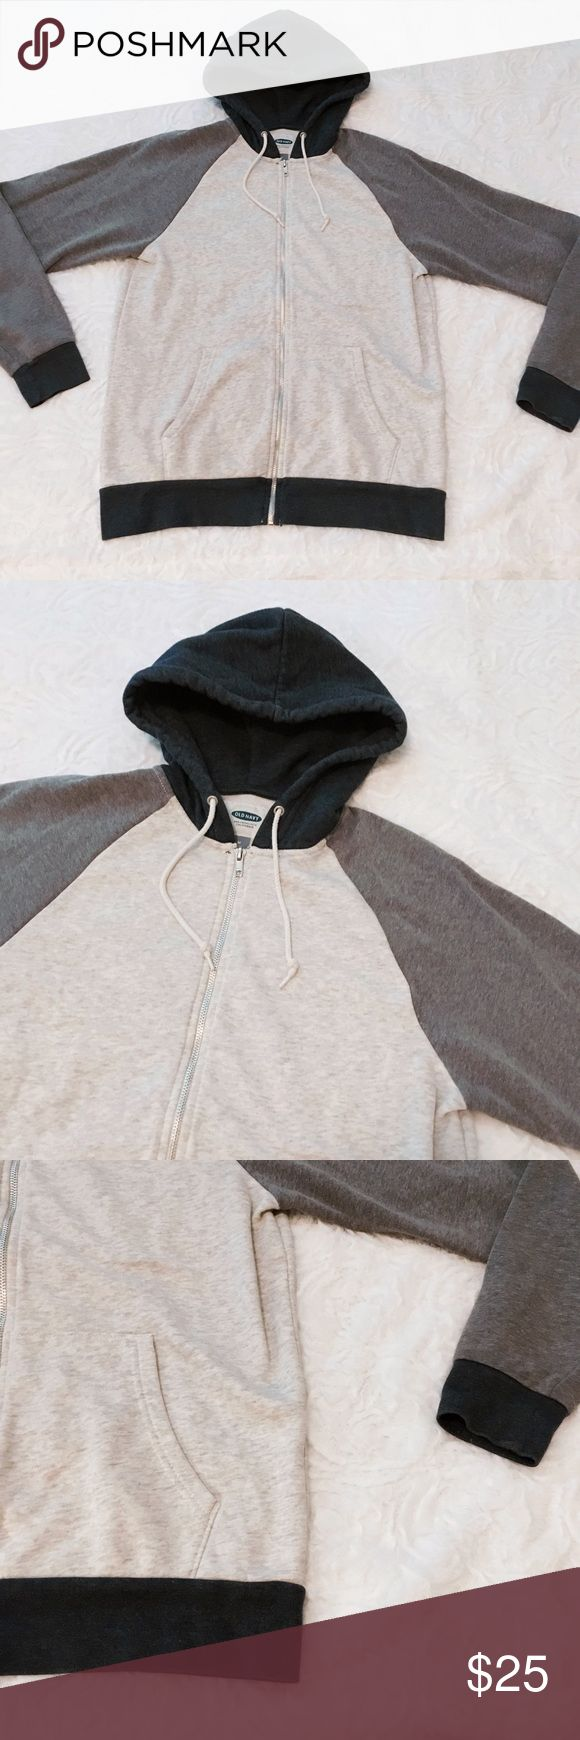 "Old Navy Grey Sweater Hoodie ✤ Sweater Hoodie ✦ Grey  ◈ Brand : Old Navy ◈ Size : Medium ◈ Condition : Good  M e a s u r e m e n t s :  Shoulder : 17.5 "" Sleeve : 23 "" Length : 26.5 ""  ☩ From smoke free and pet friendly home ღ Feel free to make an offer ツ Check out my closet for more clothes Old Navy Sweaters"